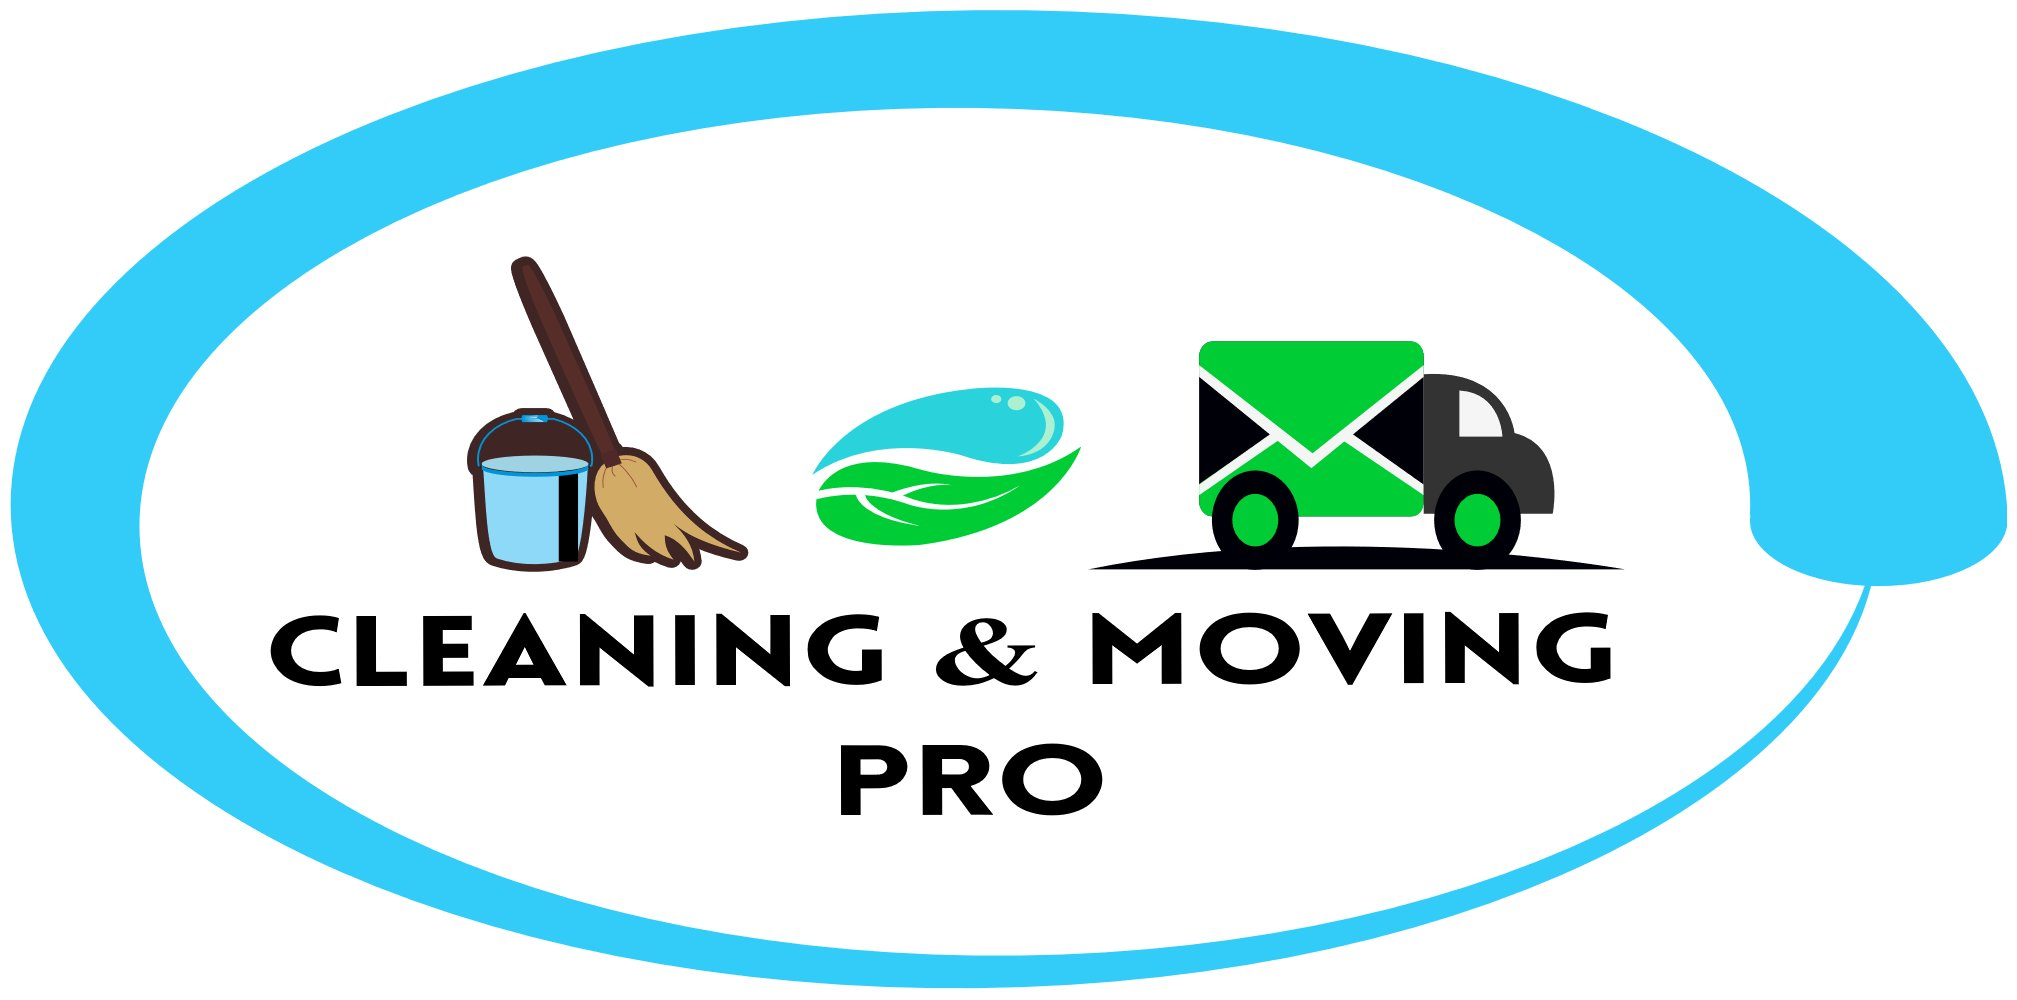 Galway Professional Cleaning Services For Commercial and Private Customers / Cleaning Contractor / House Removal / Clean Services-CLEANING AND MOVING PRO